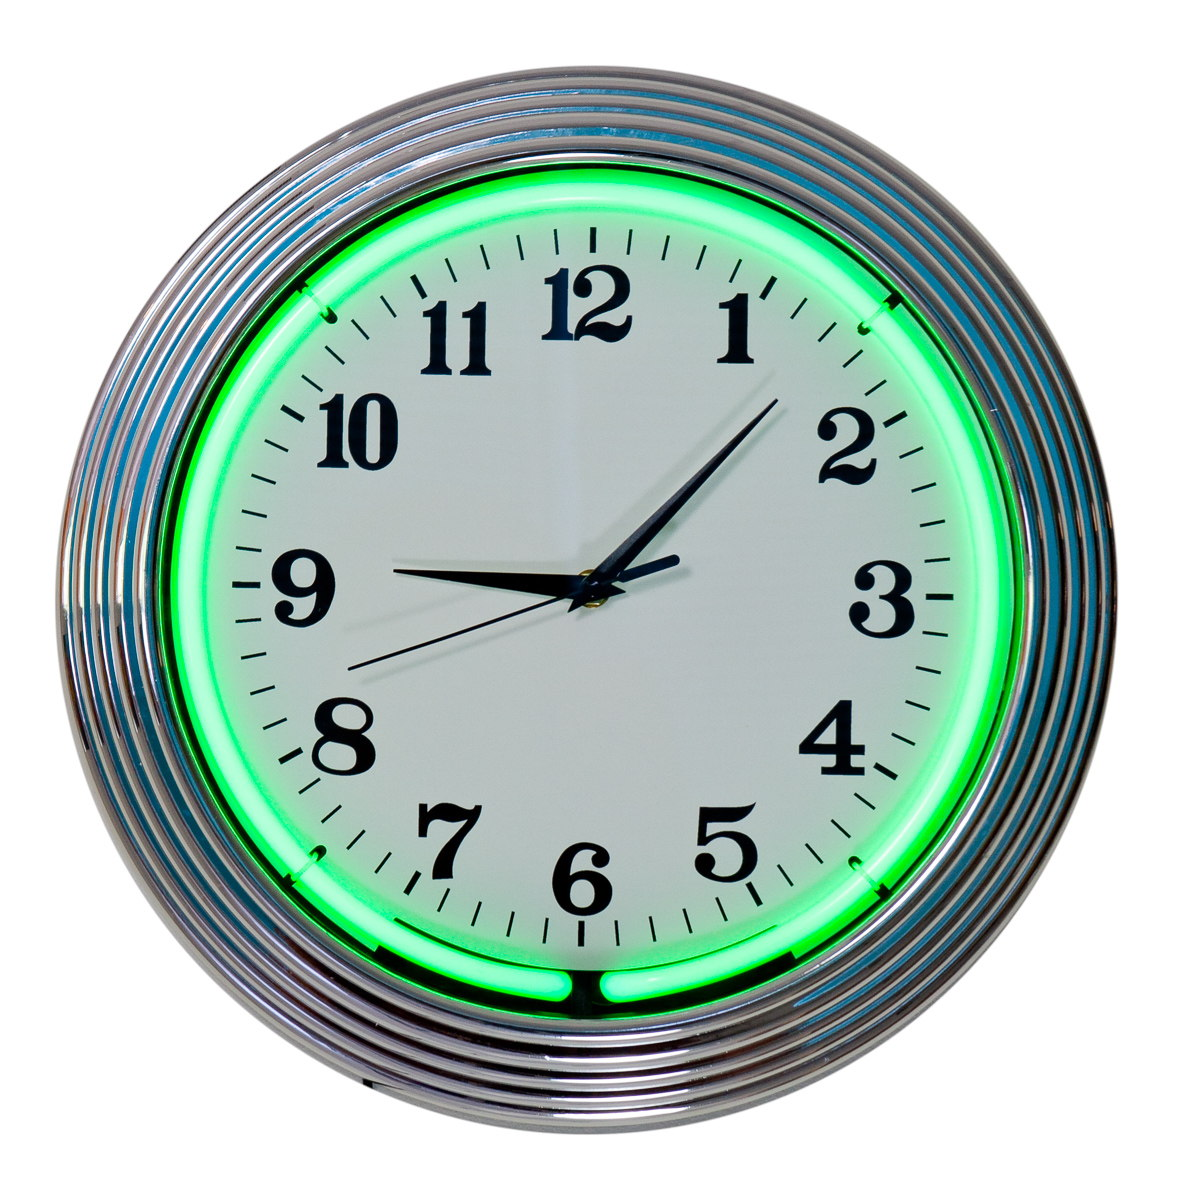 decorative wall clocks and thermometers  retroplanetcom - neon green chrome wall clock